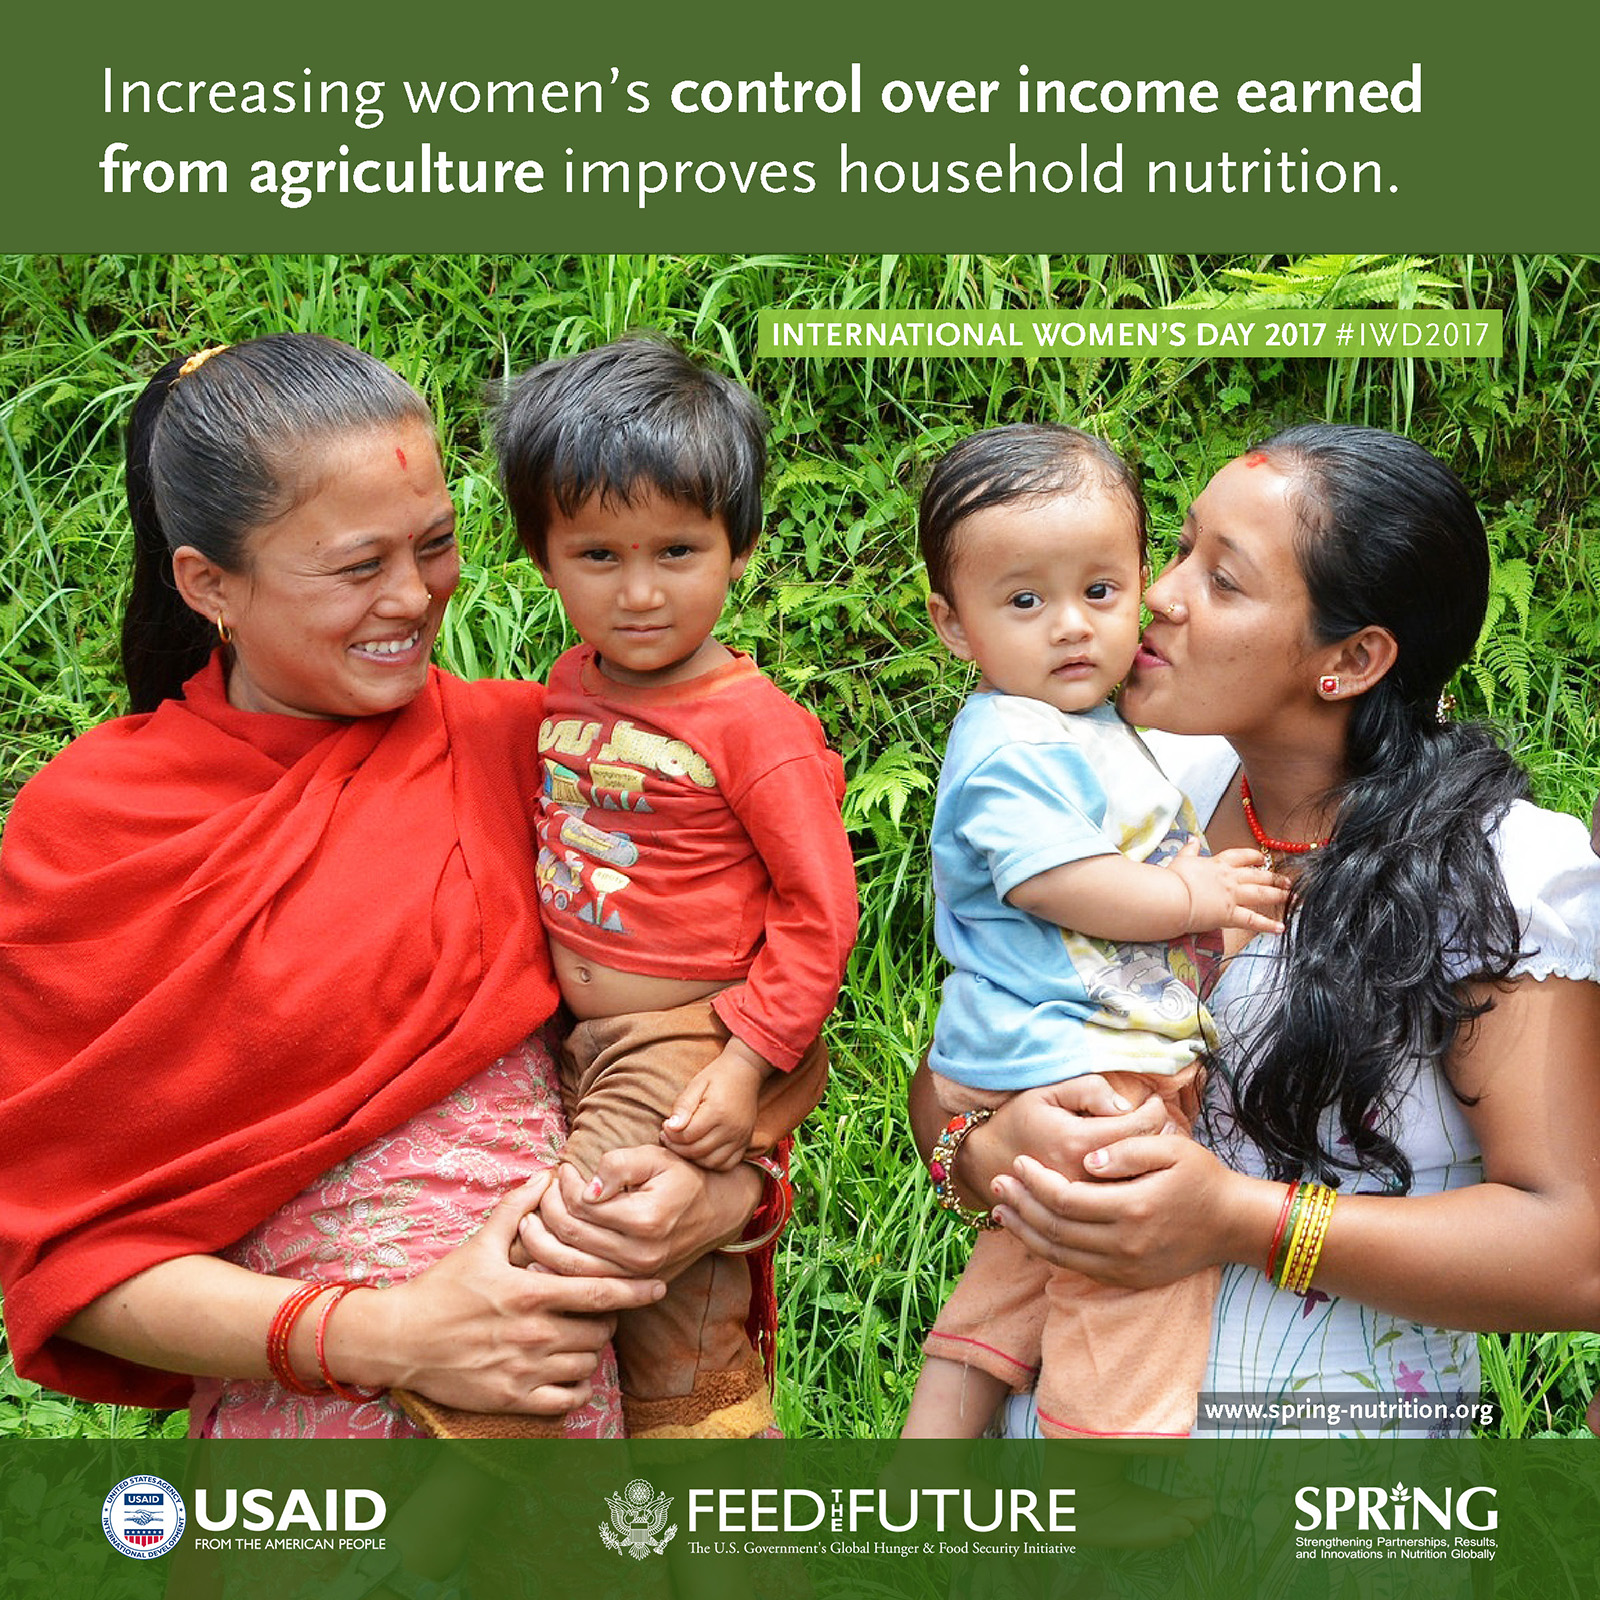 Increasing women's control over income earned from agriculture improves household nutrition.